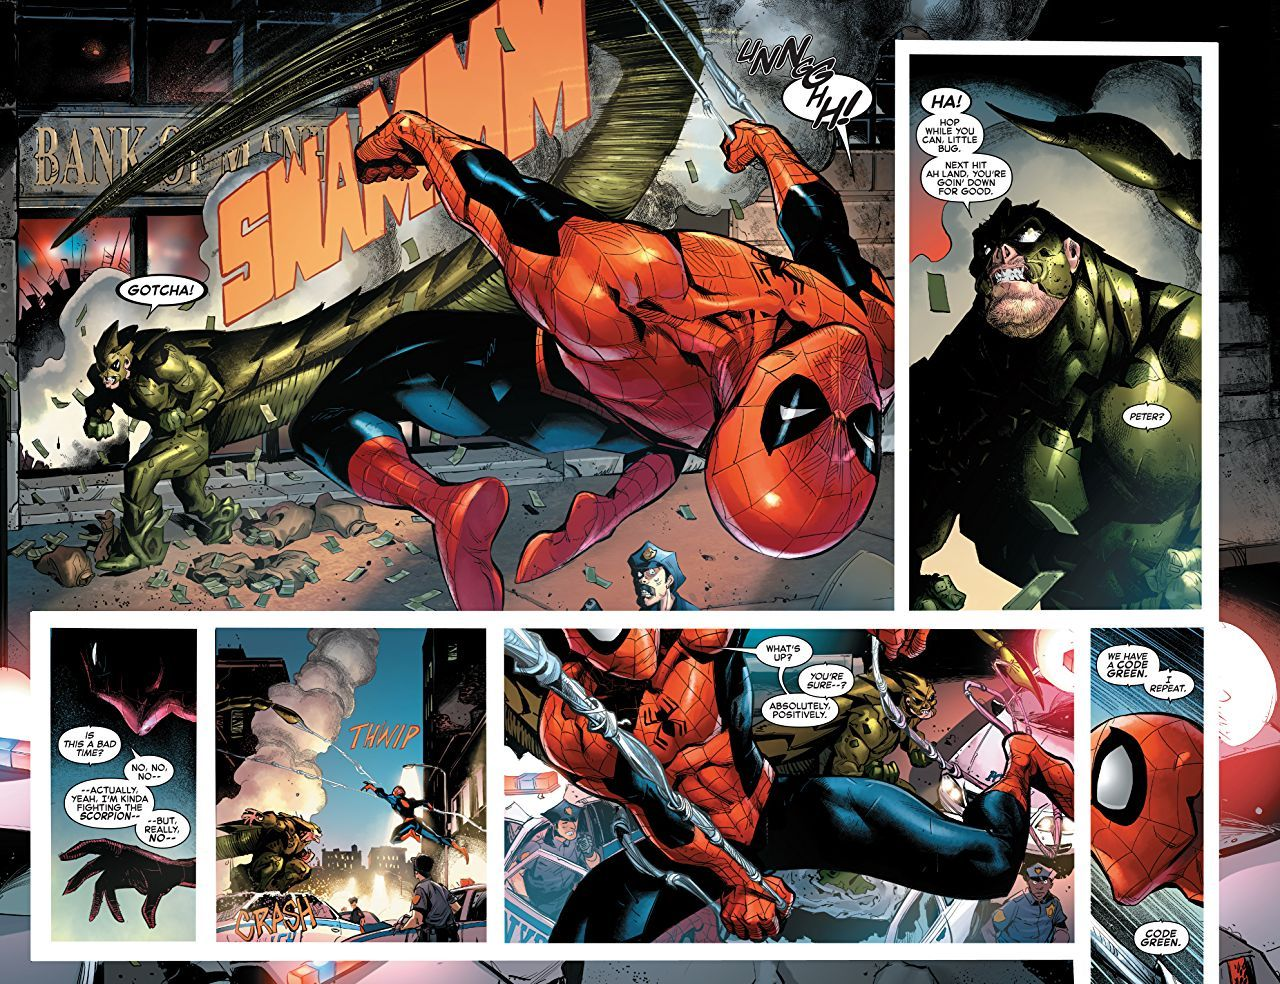 Amazing Spider-Man Renew Your Vows Vol. 1 Brawl in the Family - 3